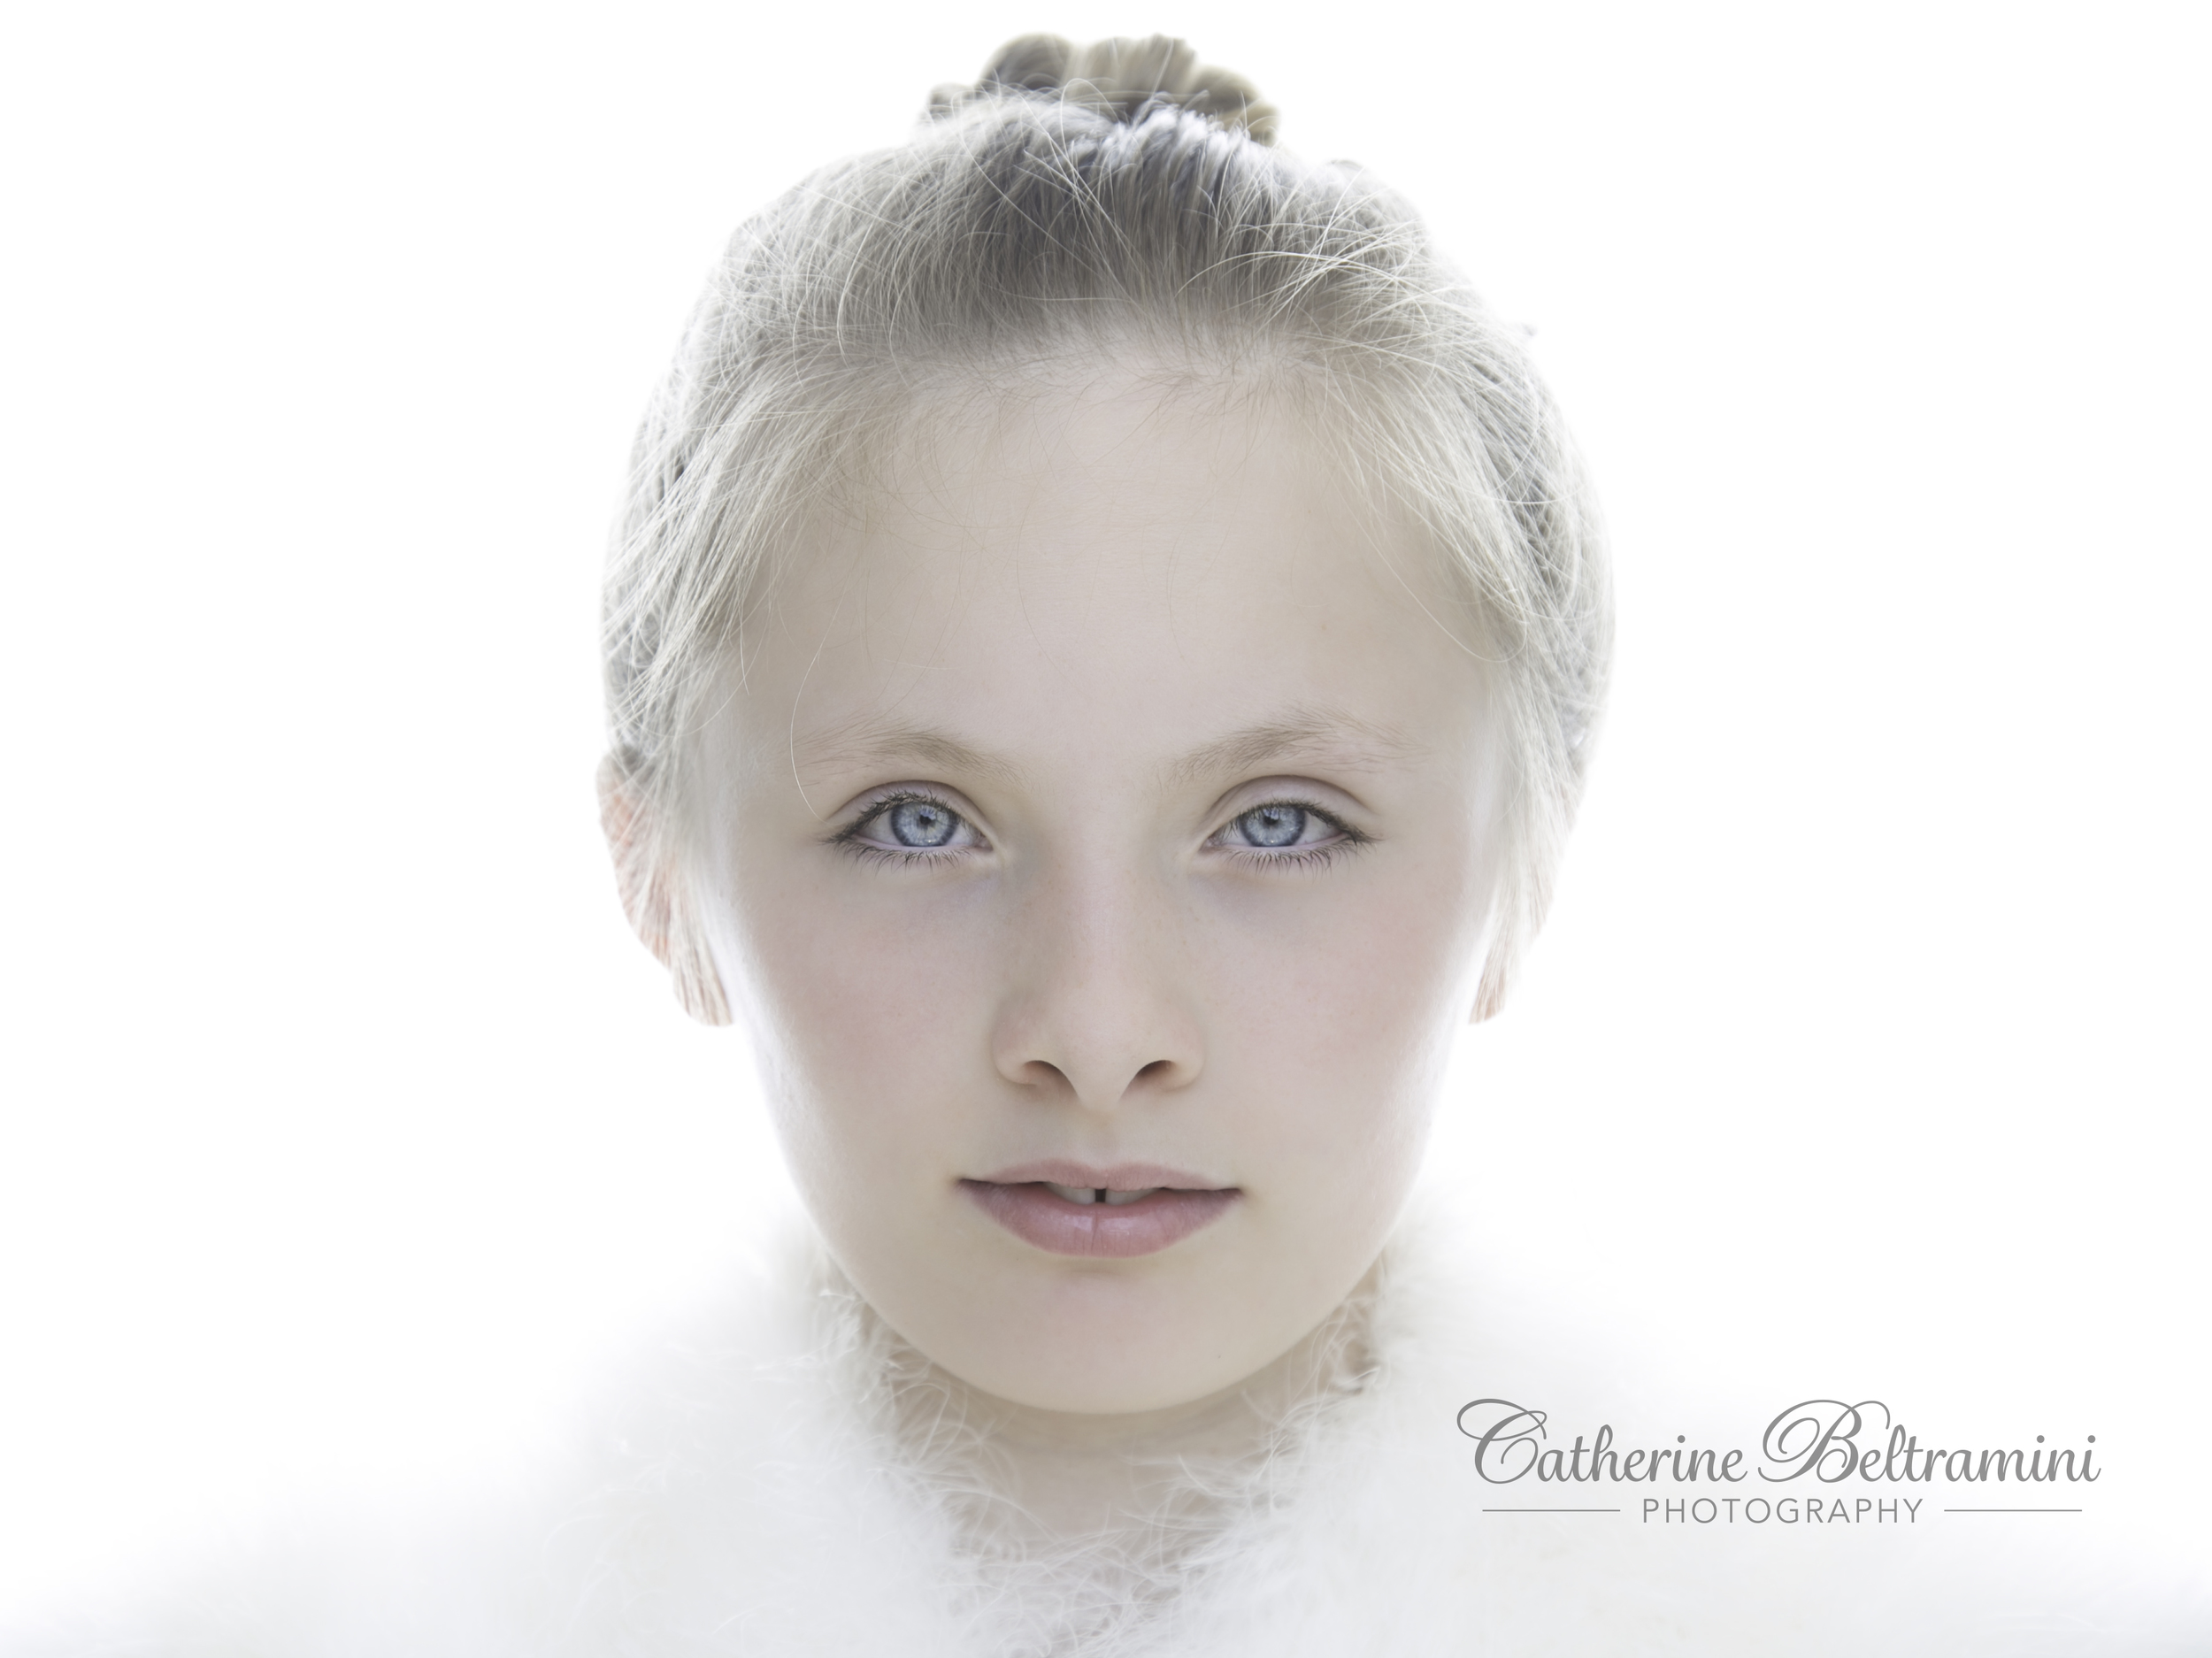 Snow queen high key portrait of a young girl.